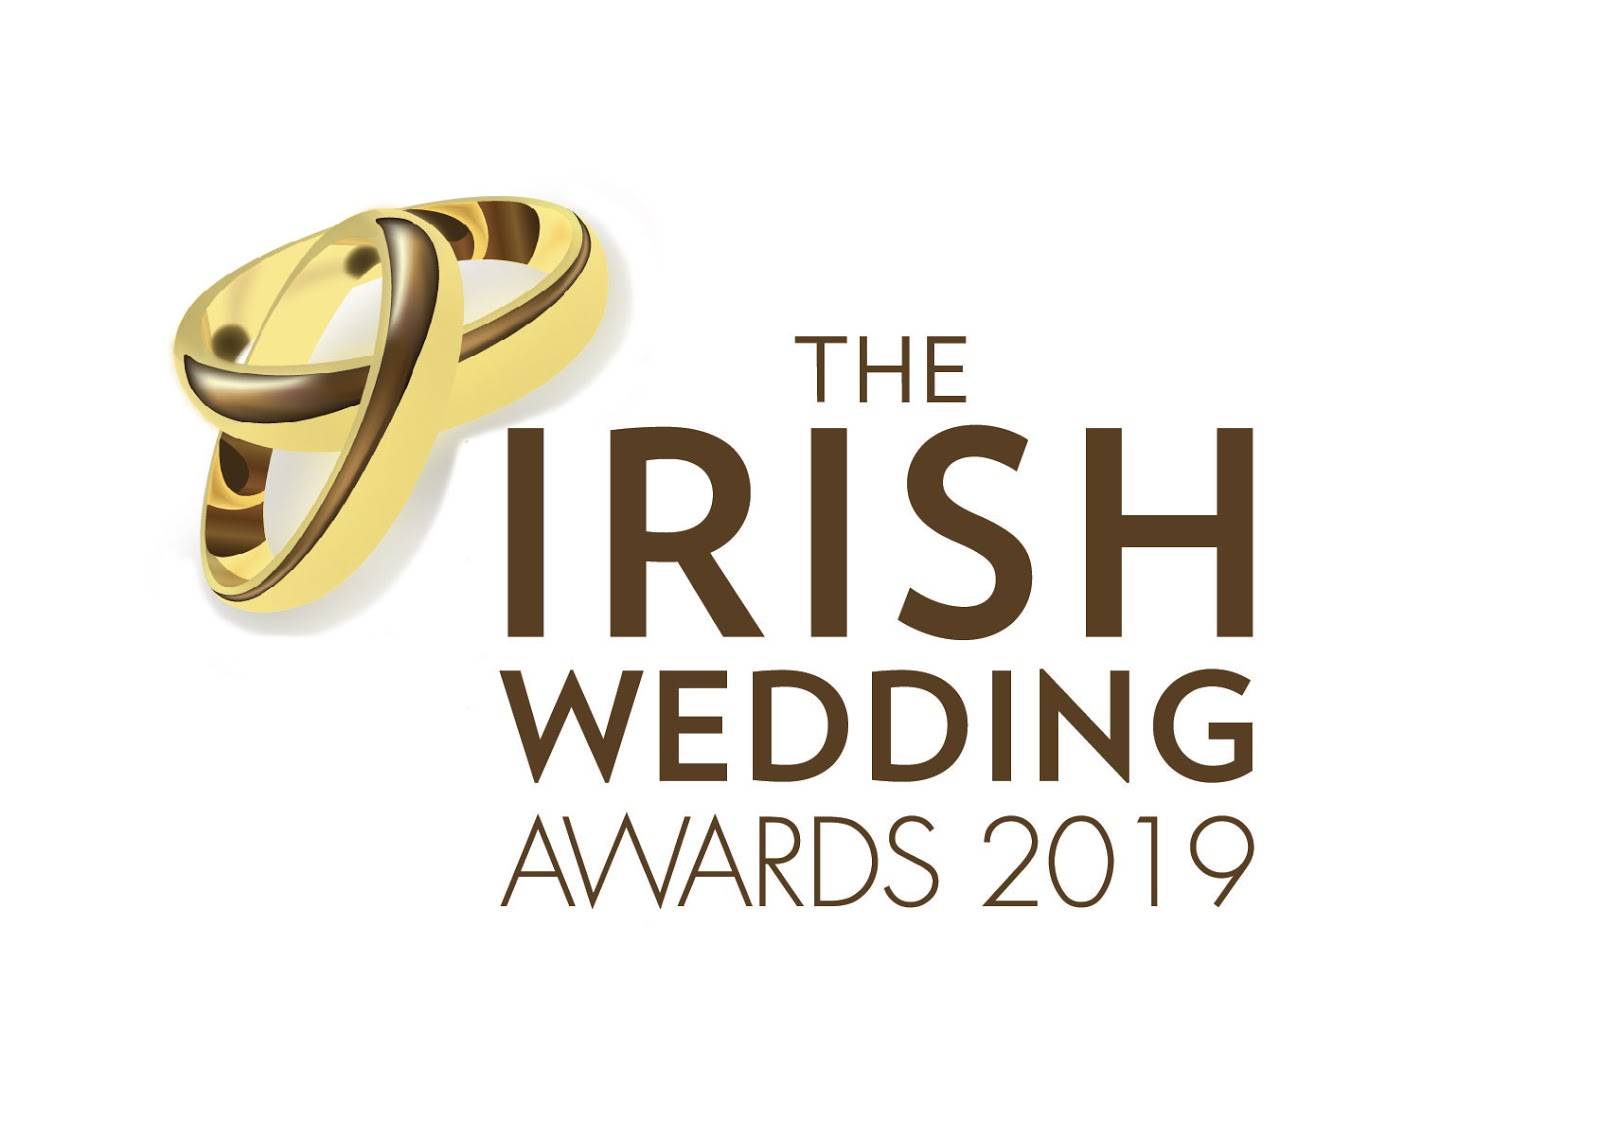 48458bb3c9 The 3rd Irish Wedding Awards are back once again for a memorable  celebration of those who make our special day one to remember.